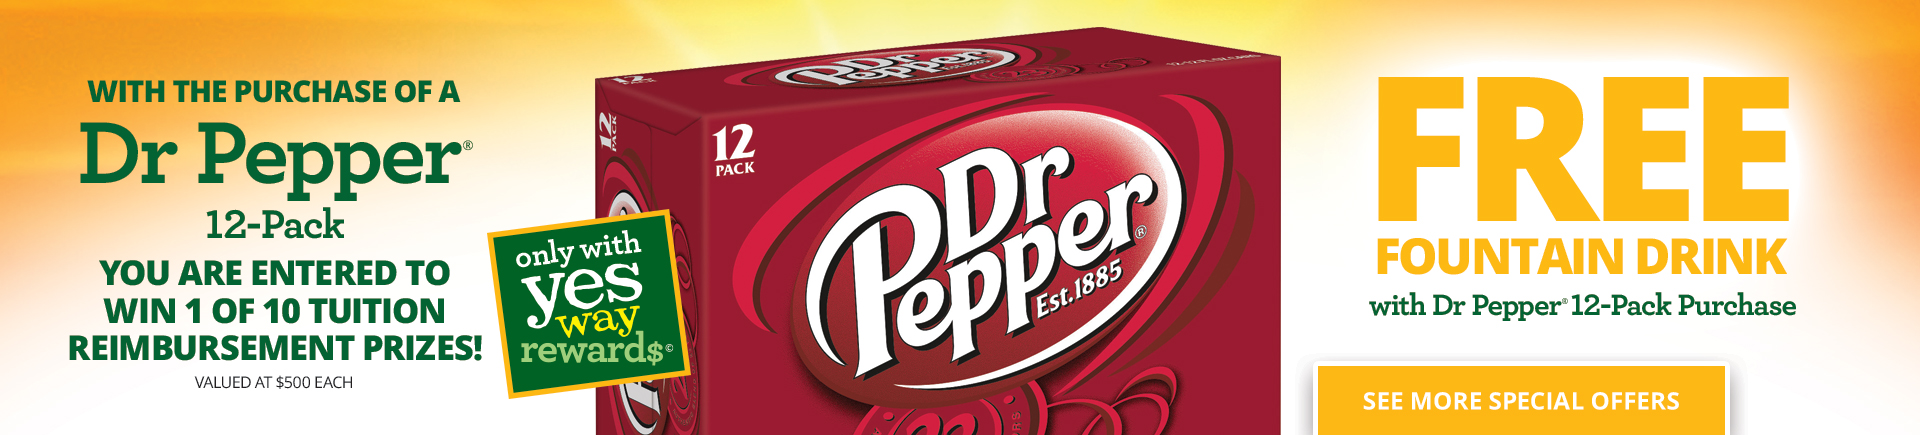 With the purchase of a Dr. Pepper 12-Pack you are entered to win 1 of 10 tuition reimbursement prizes! (valued at $500 each)